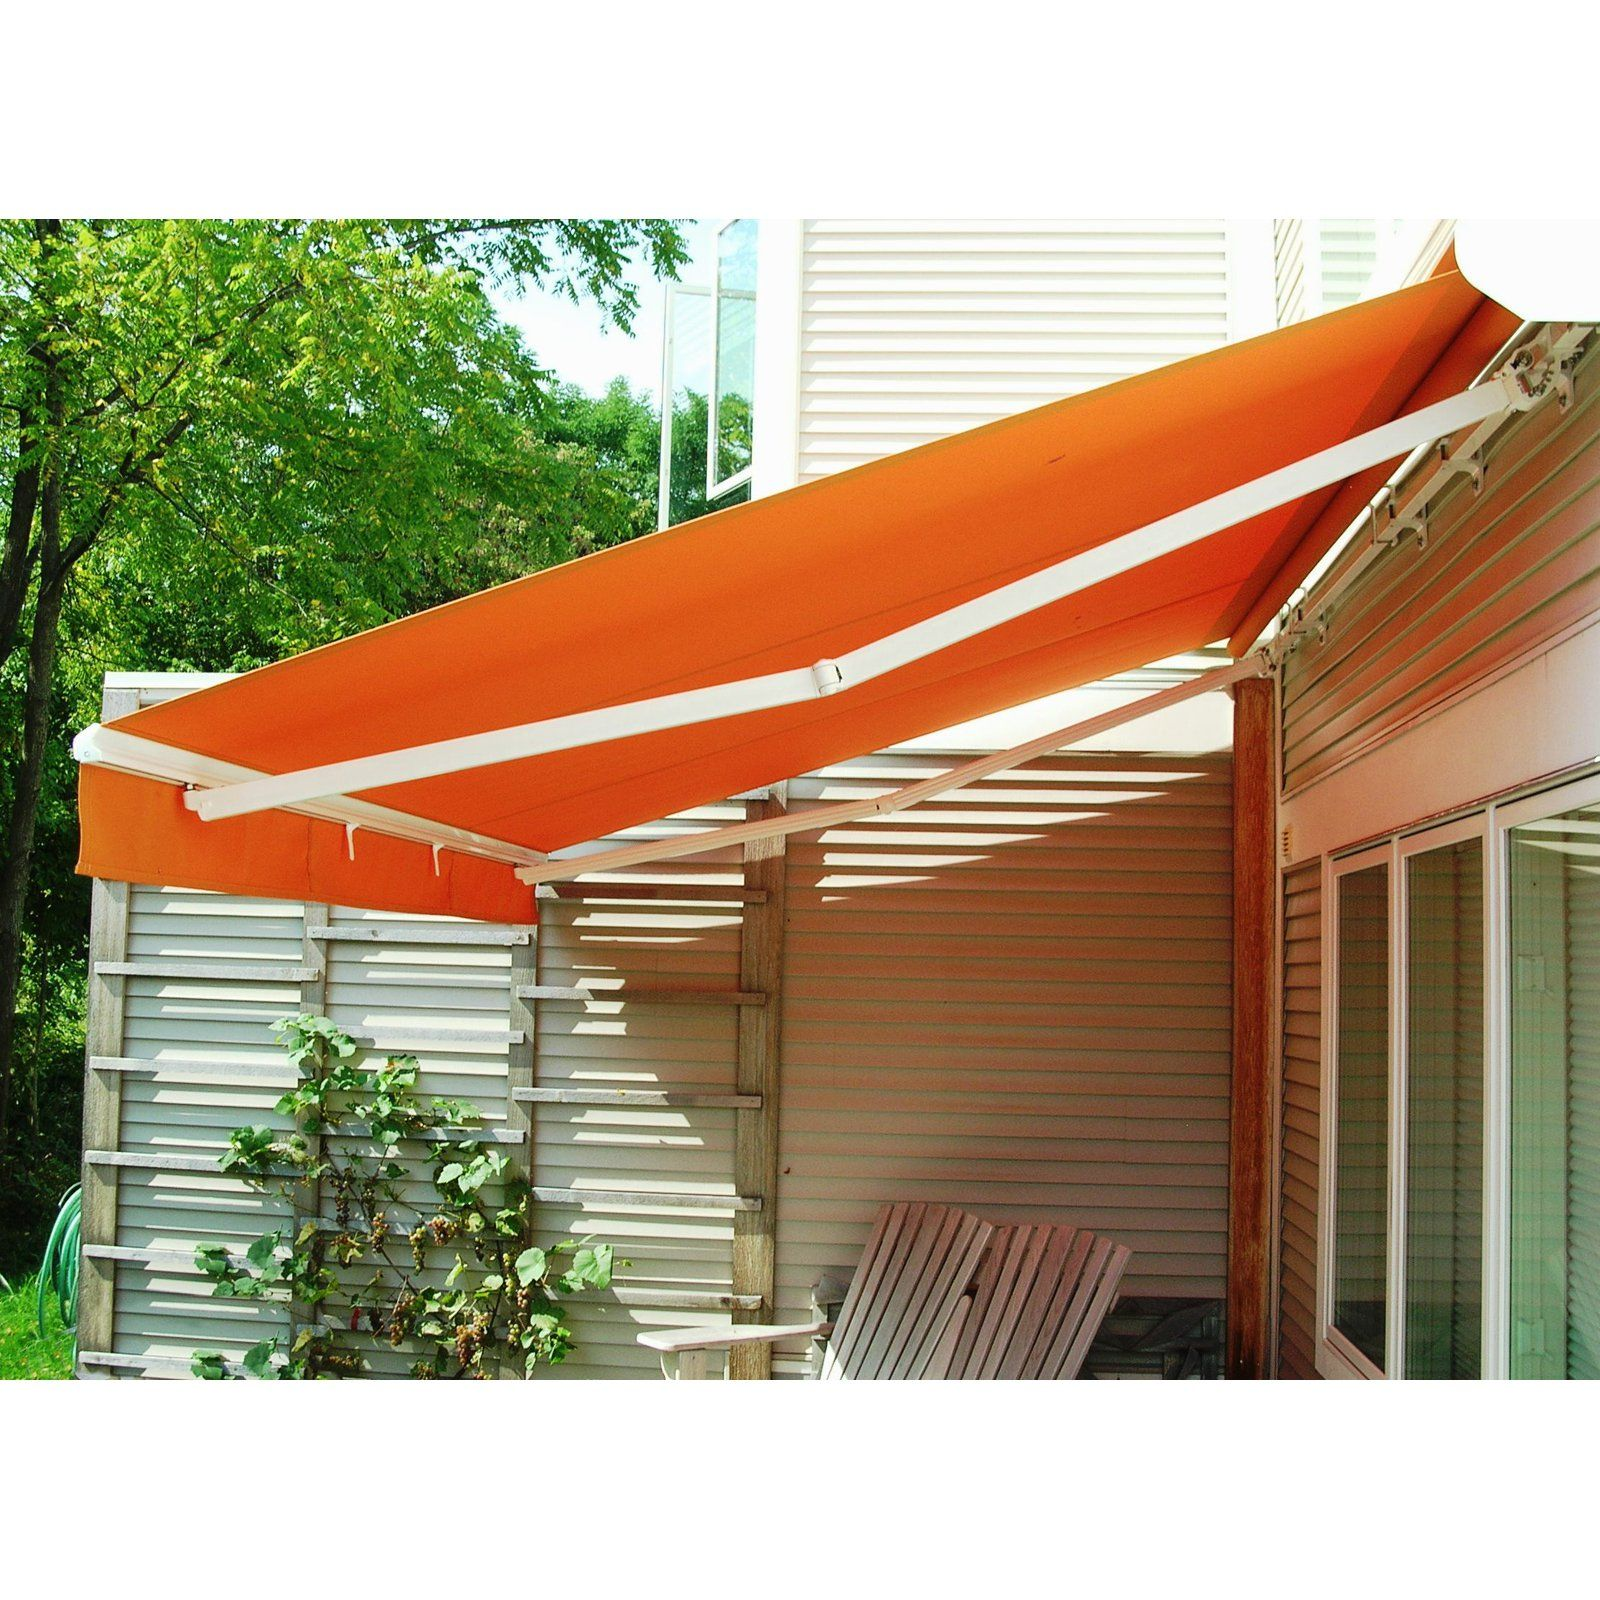 The Perfect Shade Creator 16 X 11 Ft Manual Retractable Awning Www Hayneedle Com Retractable Awning Outdoor Awnings Patio Shade